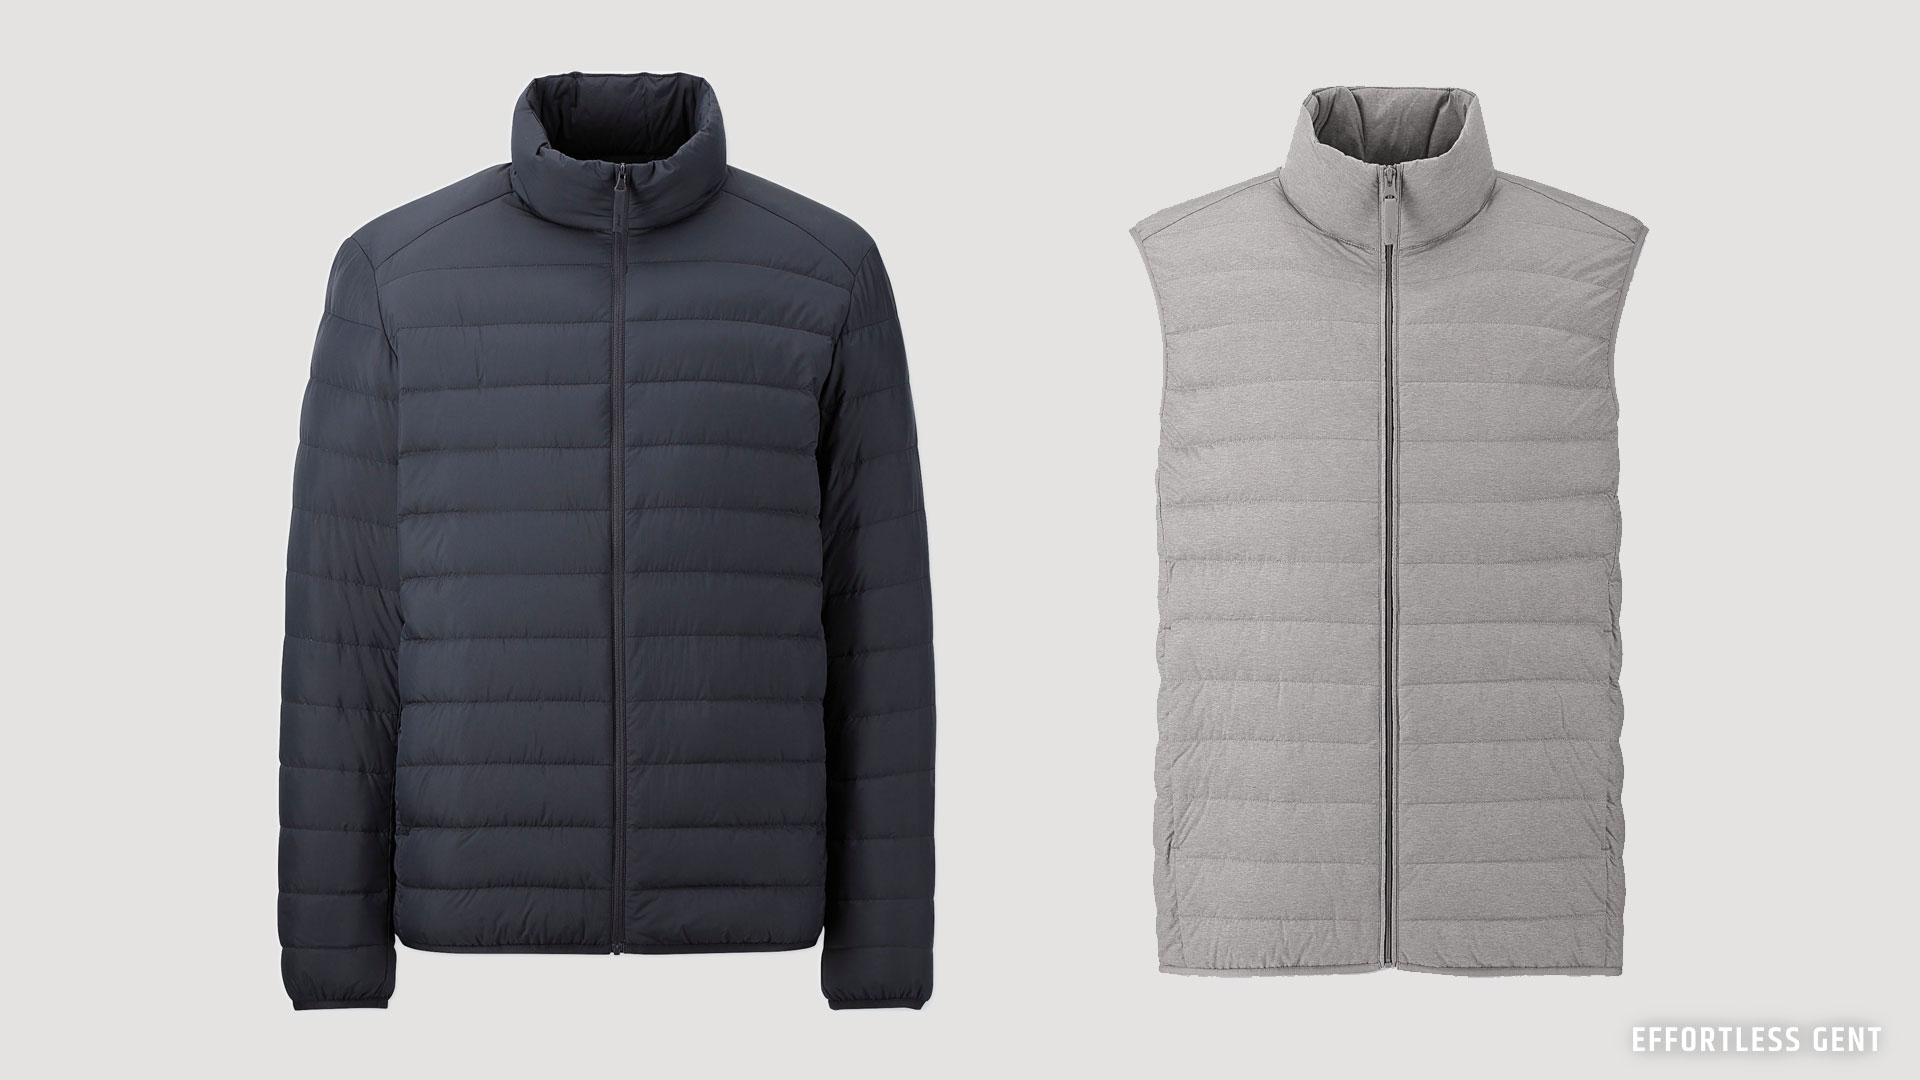 Uniqlo's Ultra Light down jacket and vest are great for the budget lean wardrobe